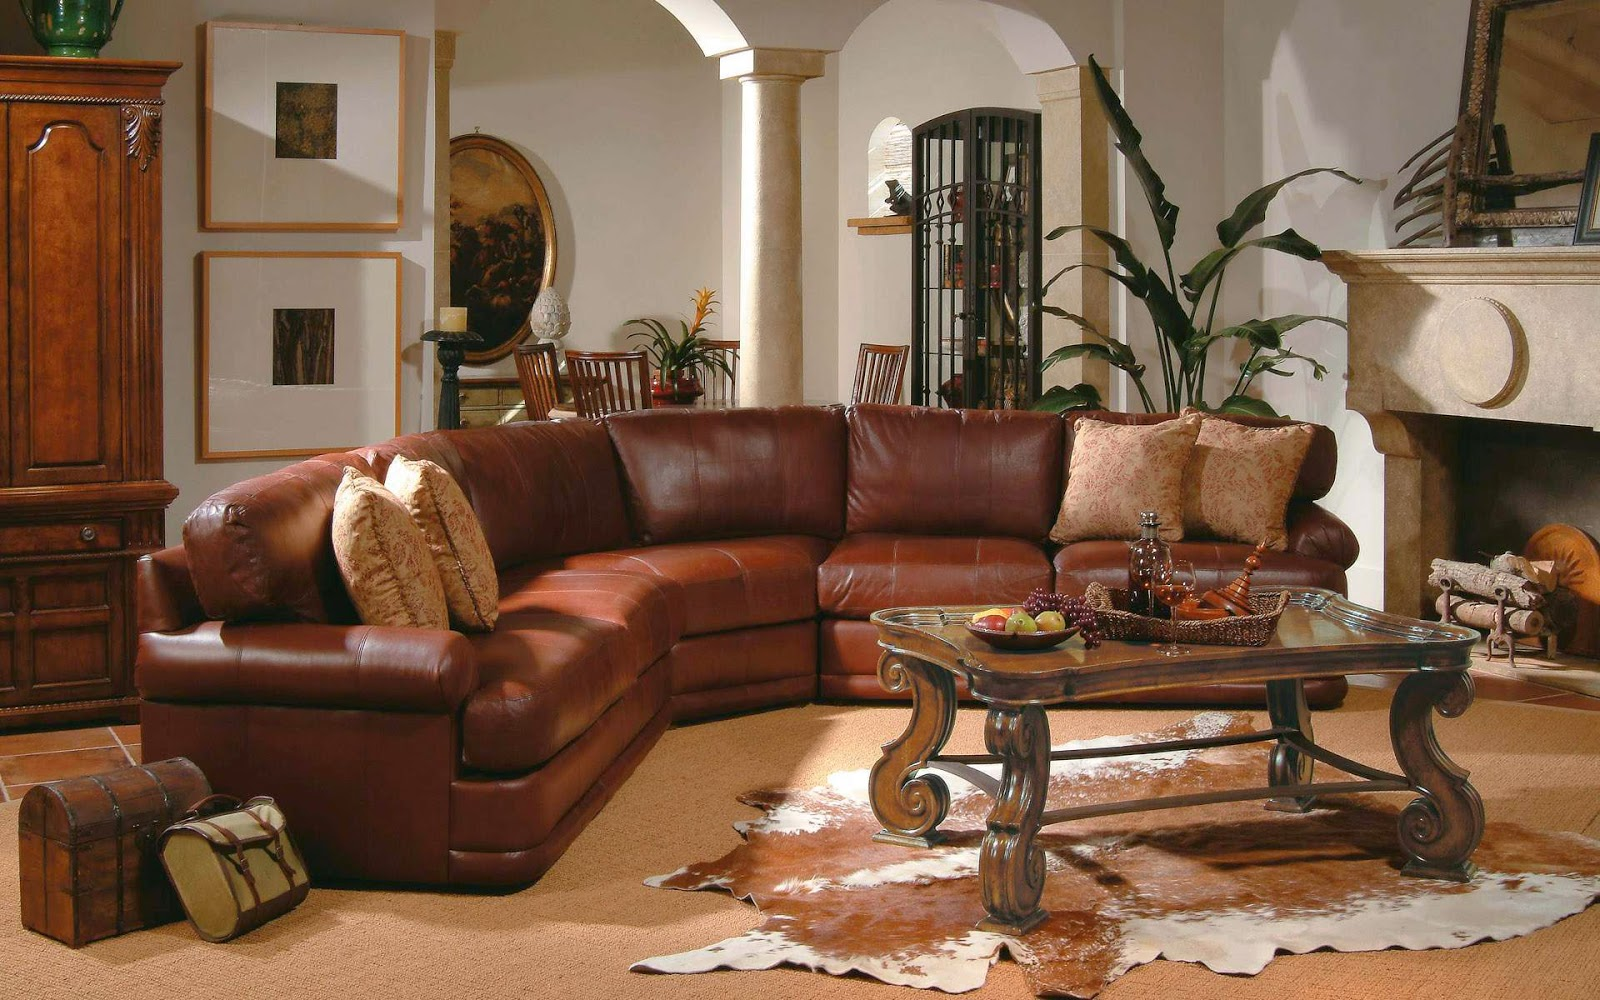 6 living room decor ideas with sectional home design hd for Decor ideas for living room